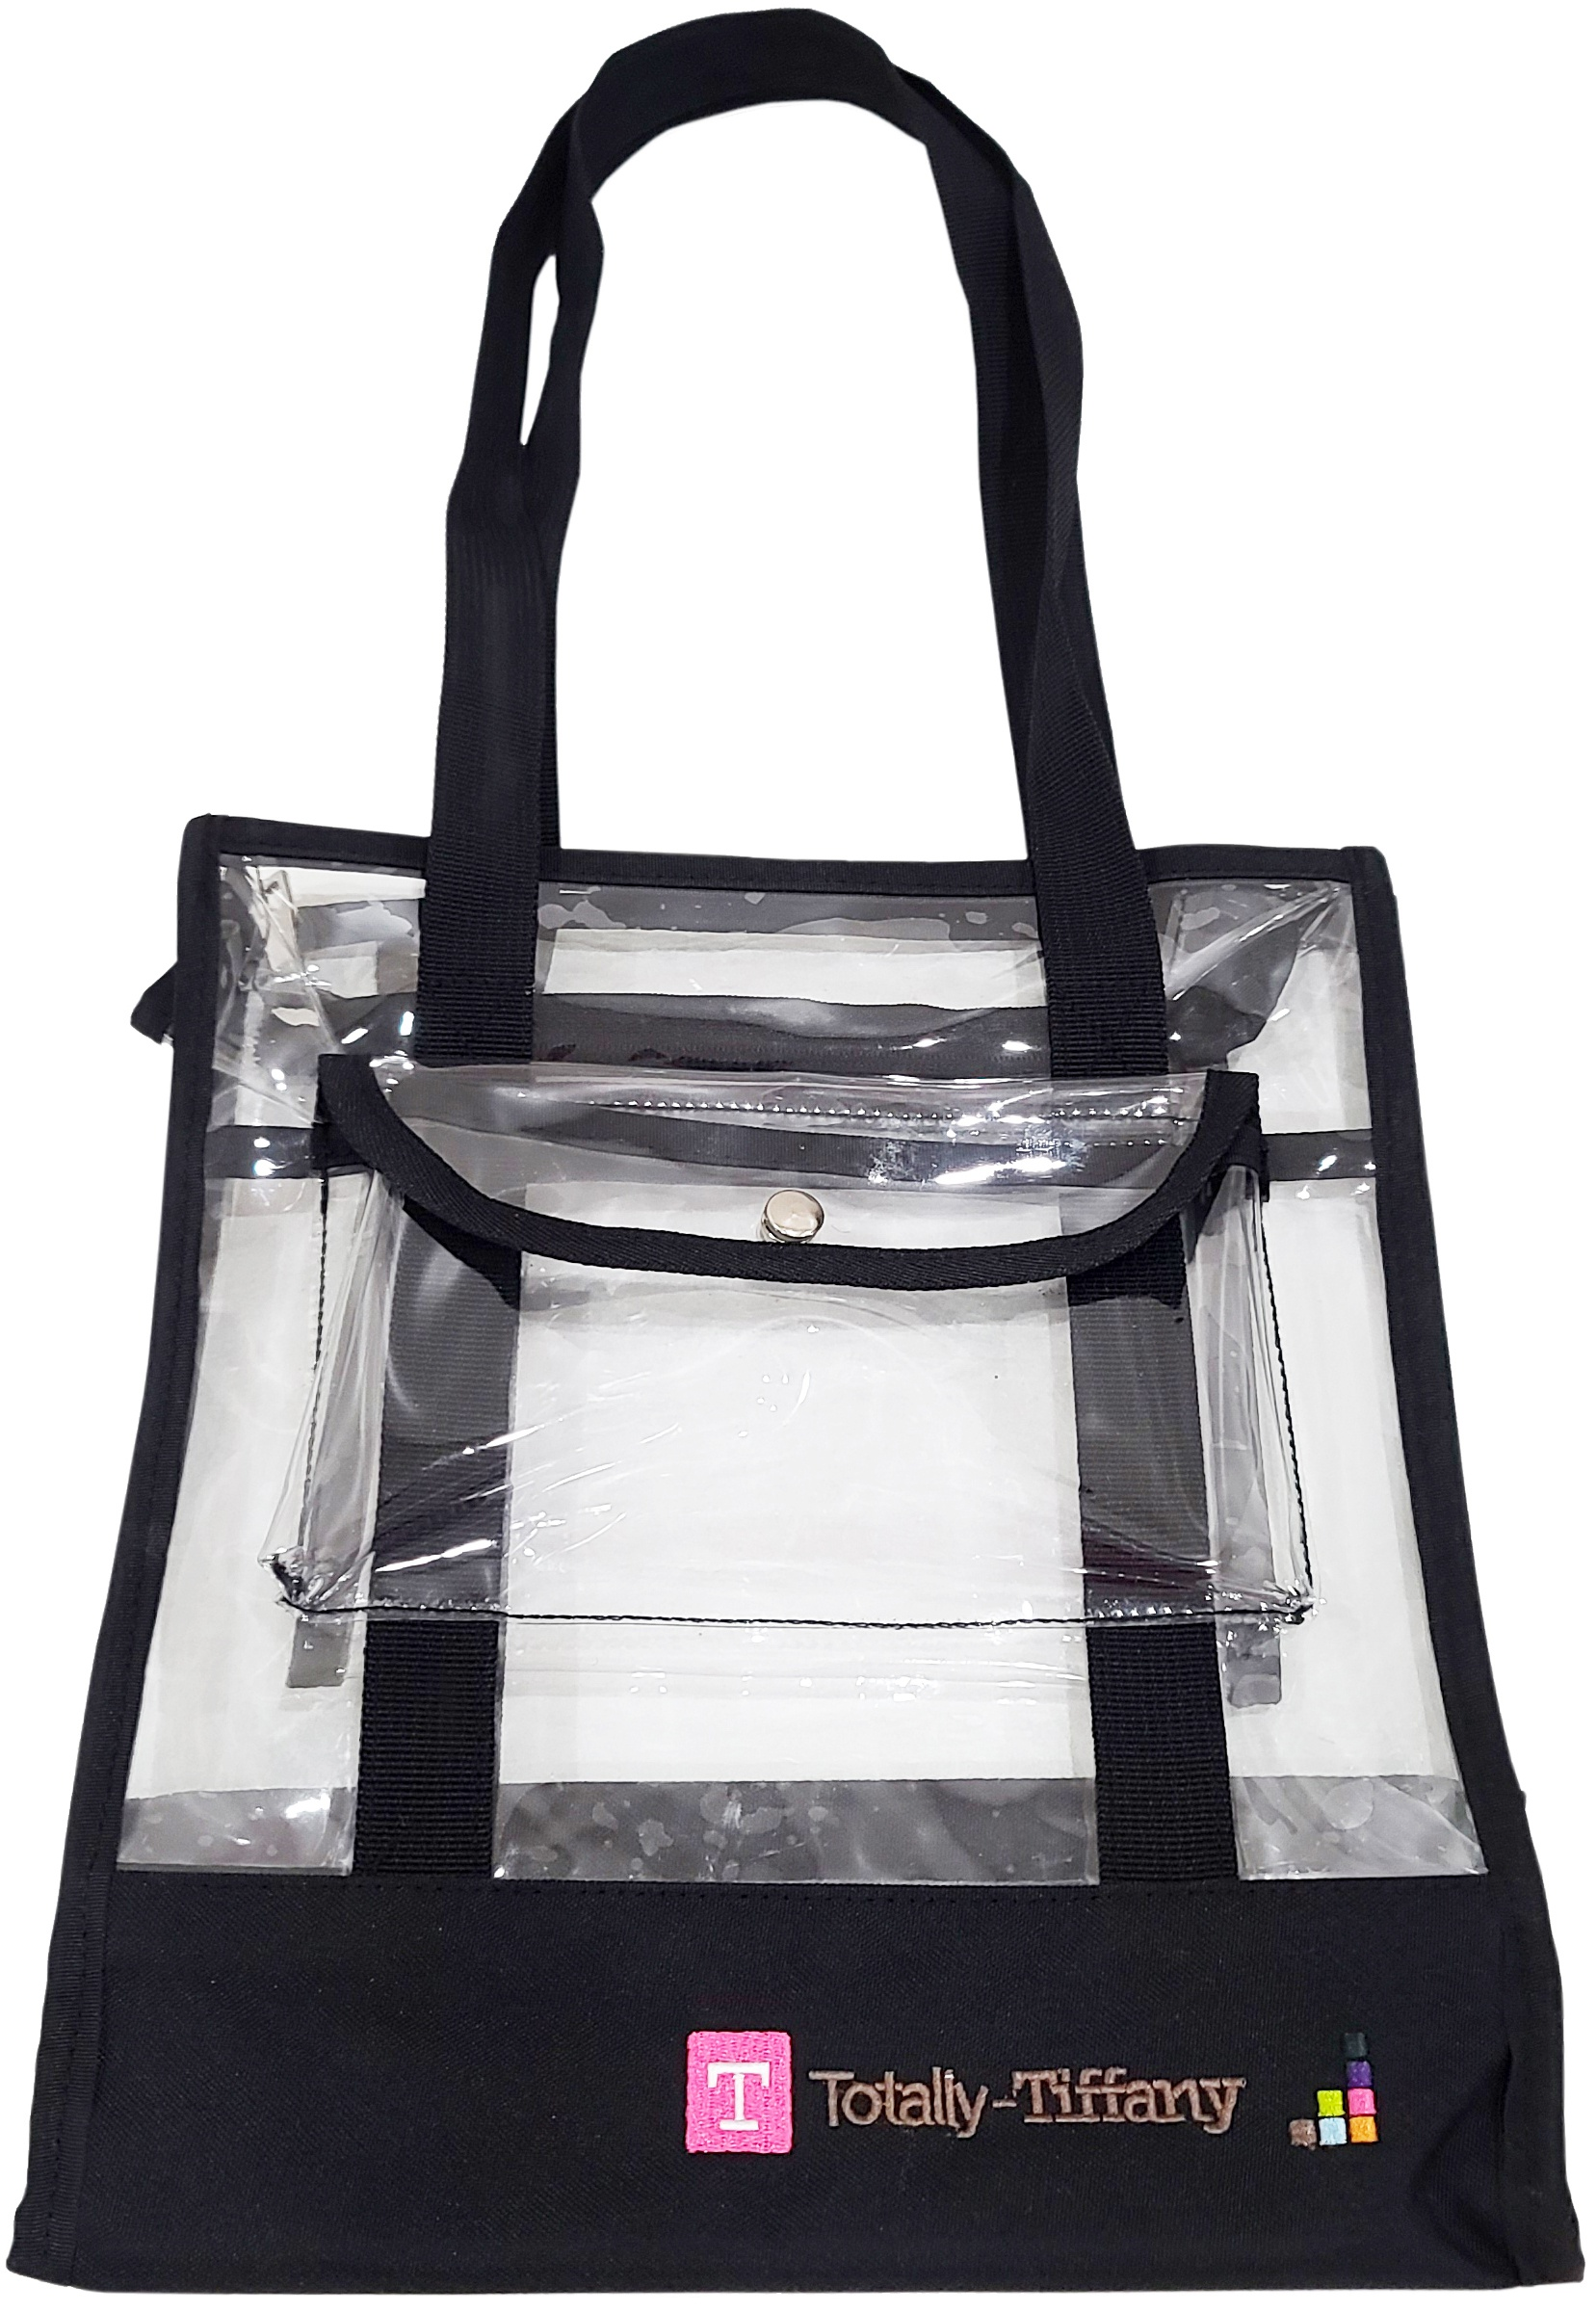 Totally-Tiffany Easy To Organize Tote Bag-Nancy